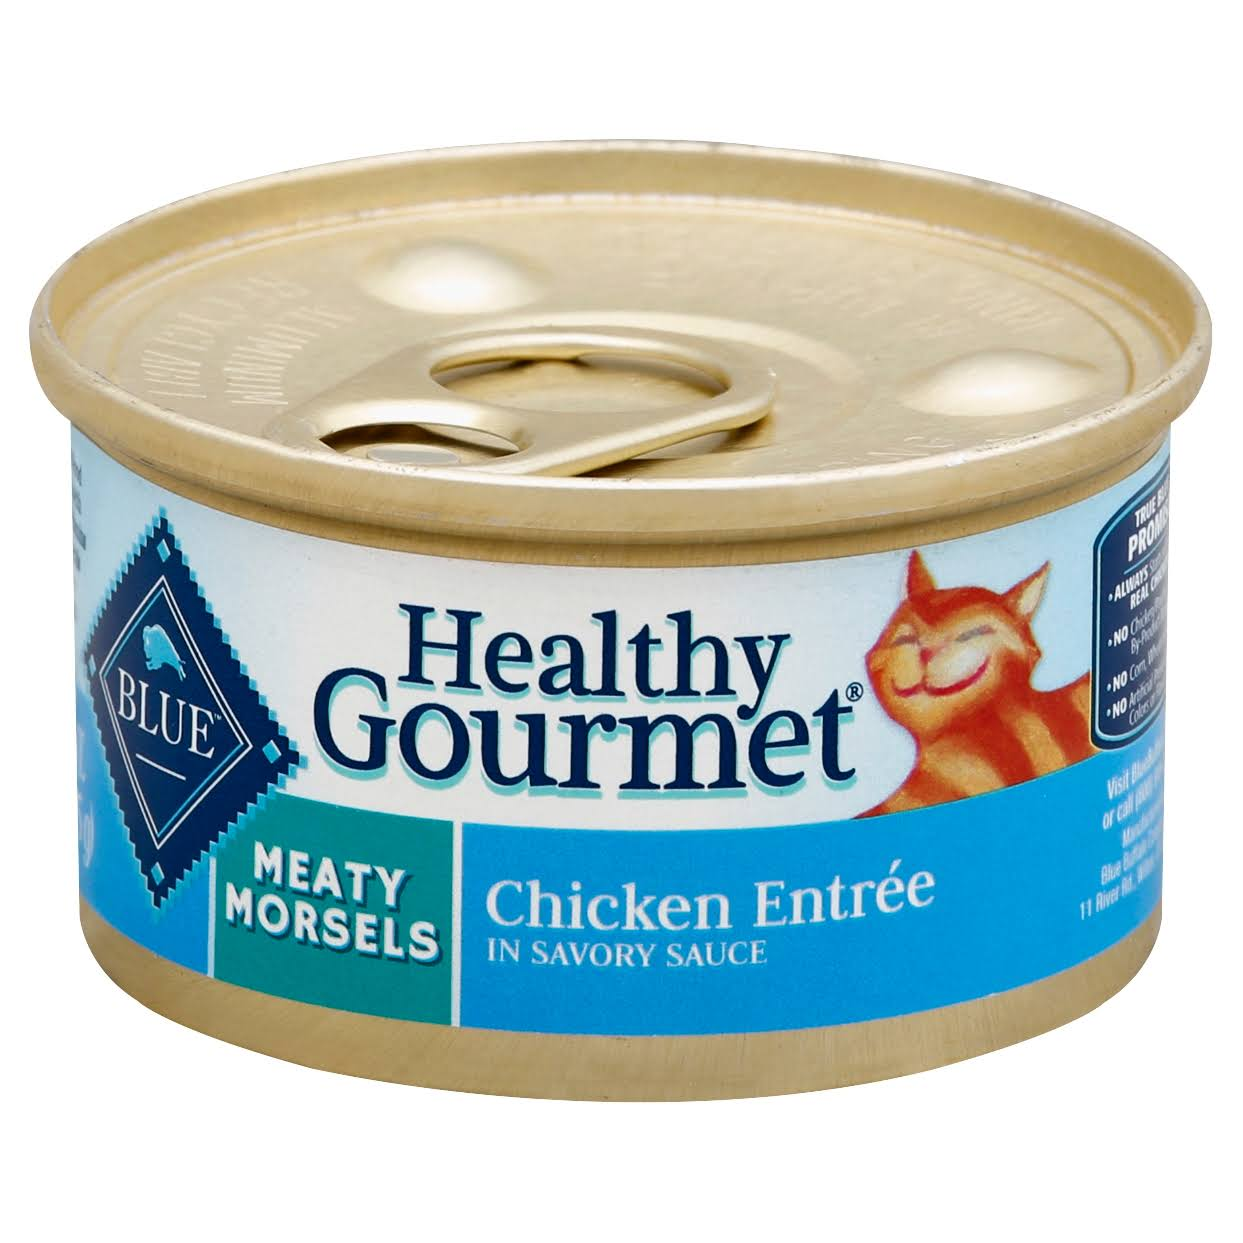 Blue Buffalo Healthy Gourmet Meaty Morsels Cat Food - Chicken Entree In Savory Sauce